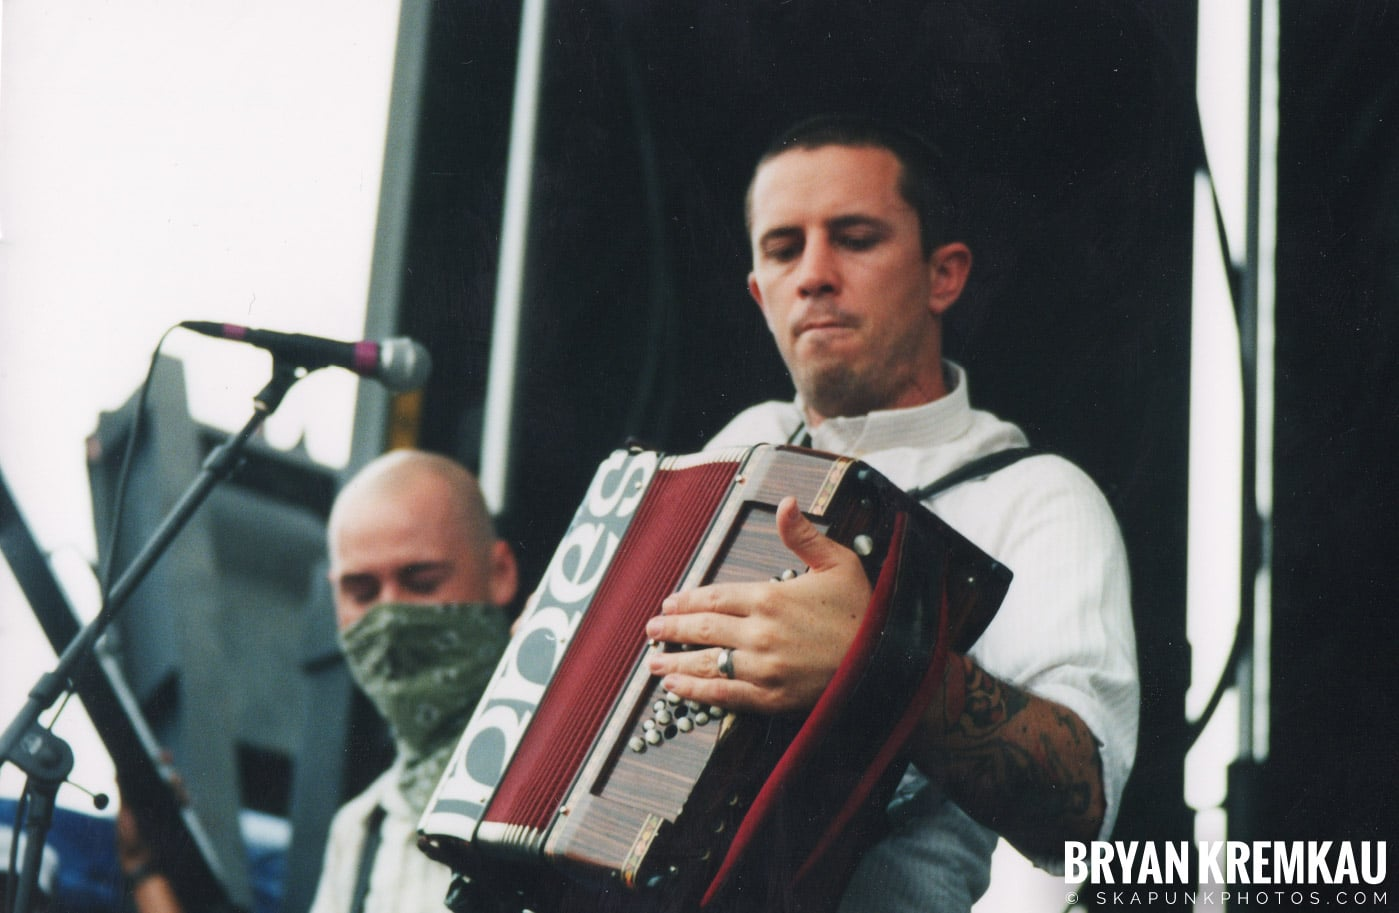 Flogging Molly @ Vans Warped Tour, Randall's Island, NYC - 8.4.01 (8)